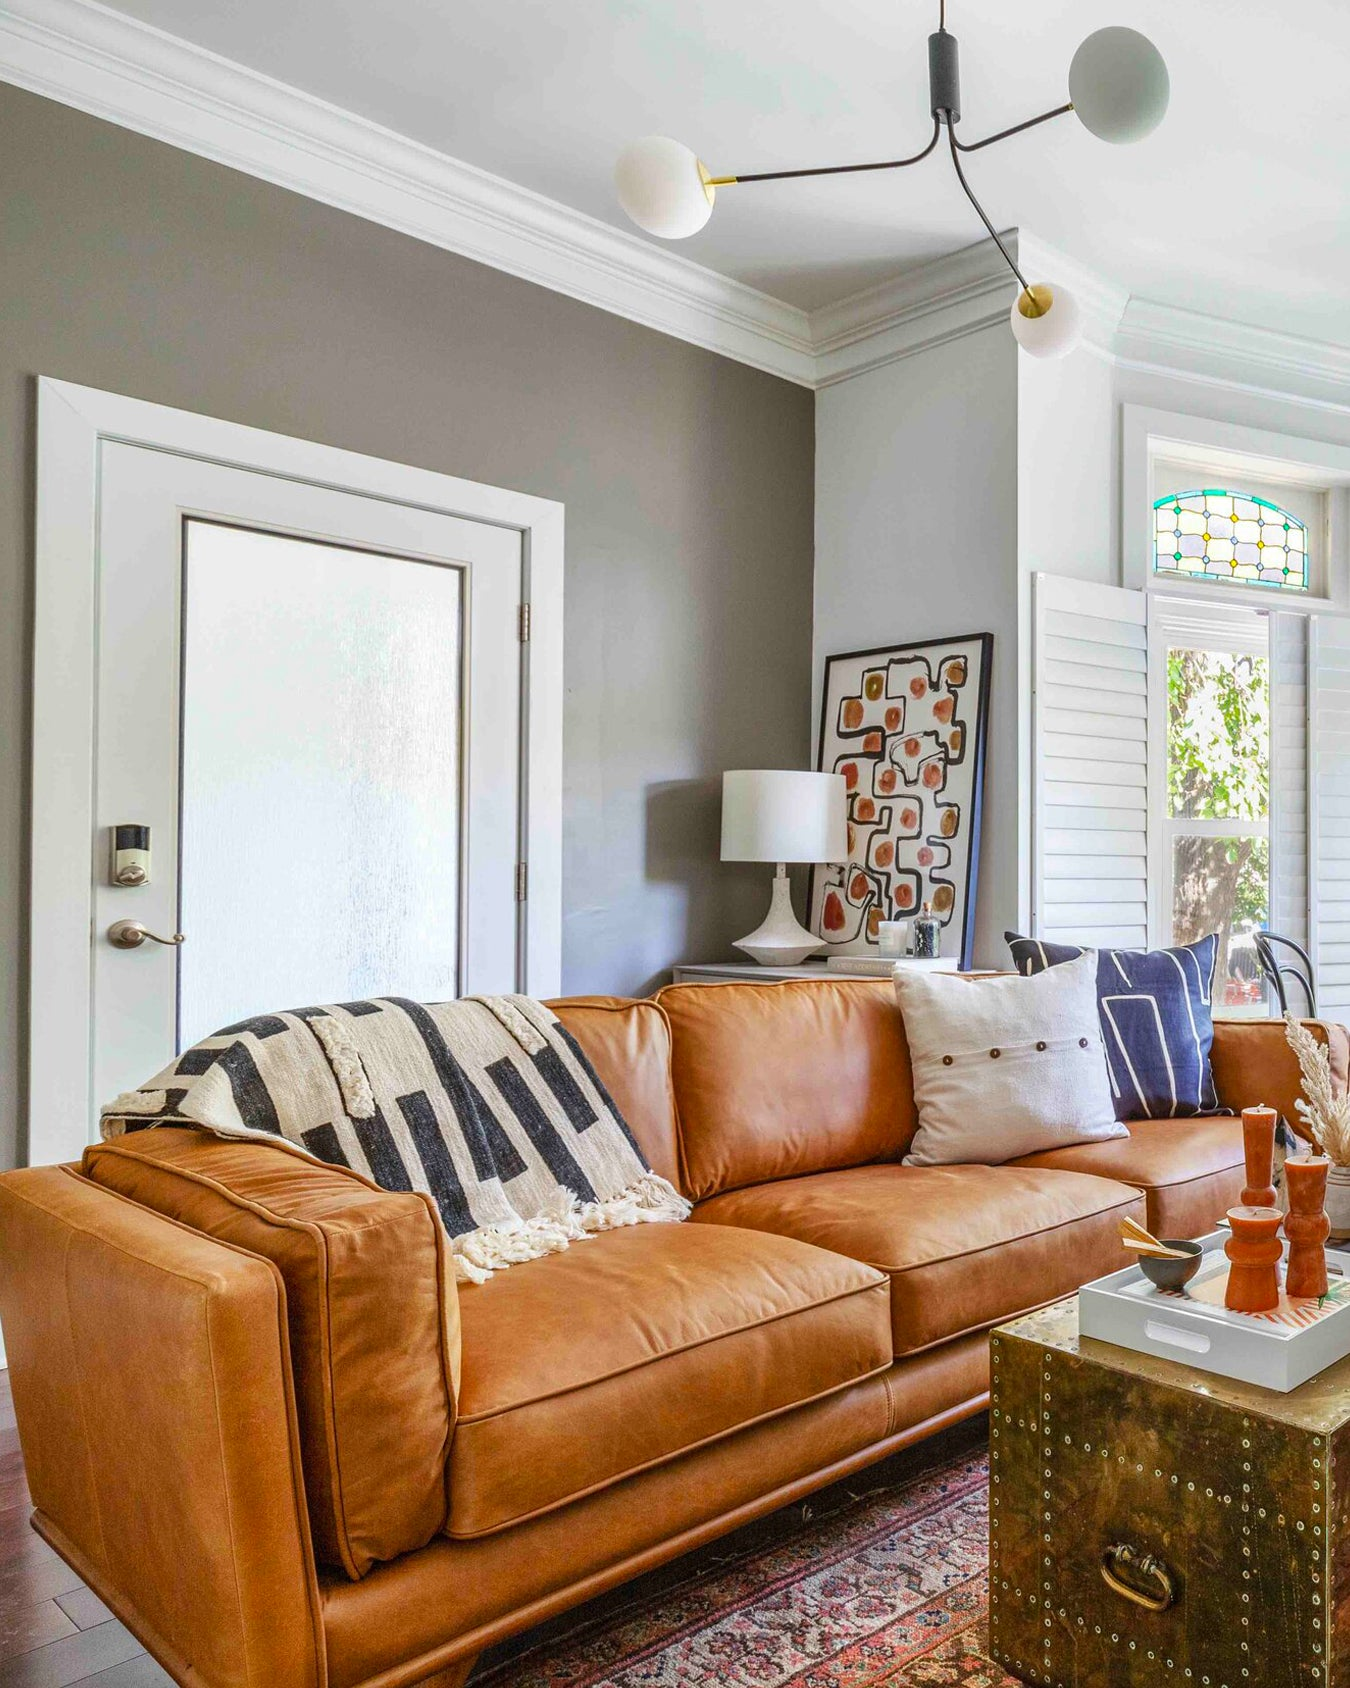 Searching for the perfect greige paint color? This perfect grieve hue is Shade by Clare. Discover more perfect griege paint colors.